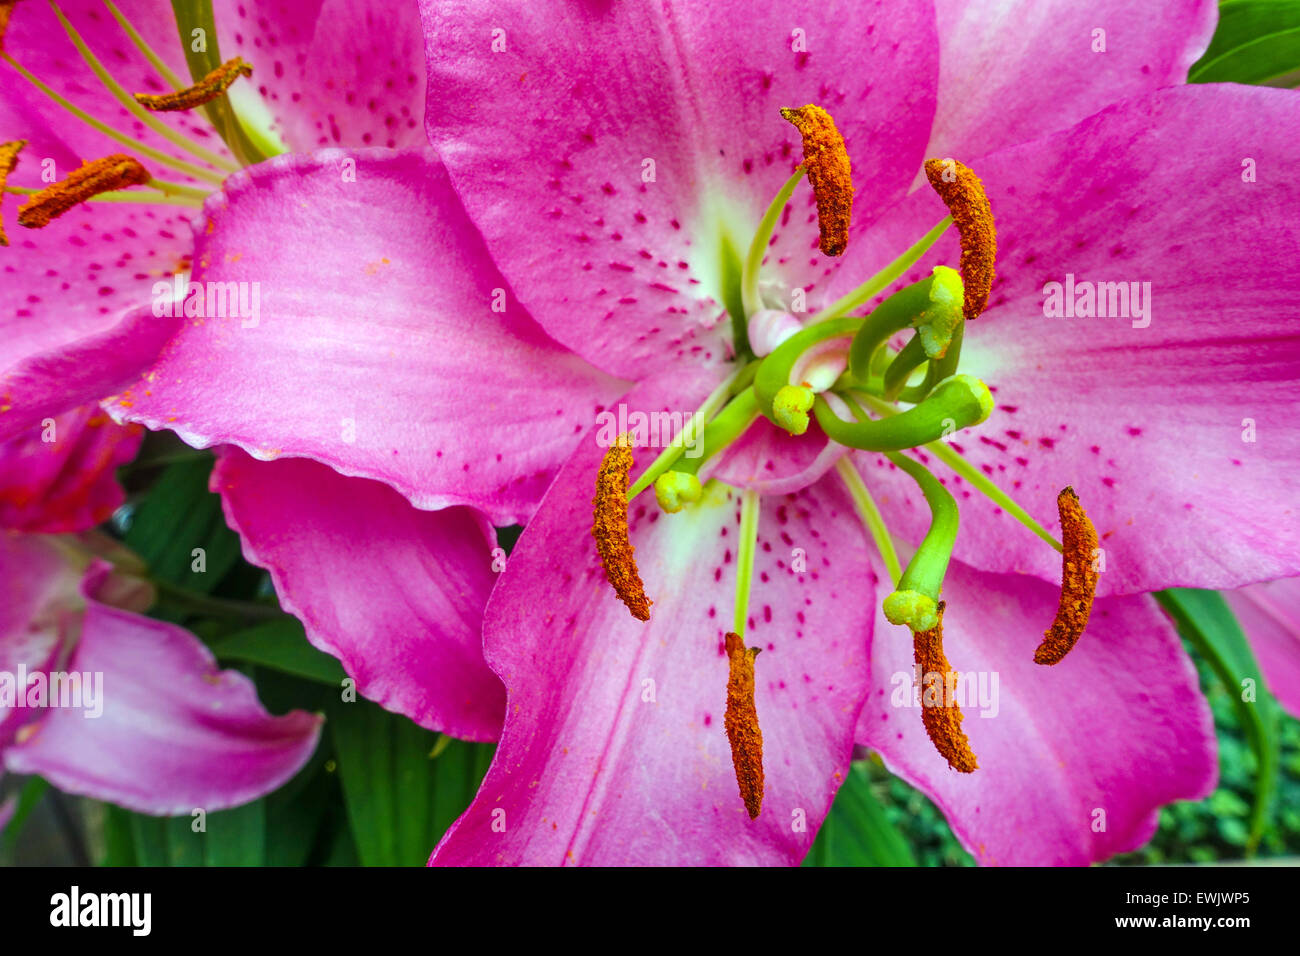 Purple lily stock photos purple lily stock images alamy close up of purple lily flowers with stamens and pollen stock image izmirmasajfo